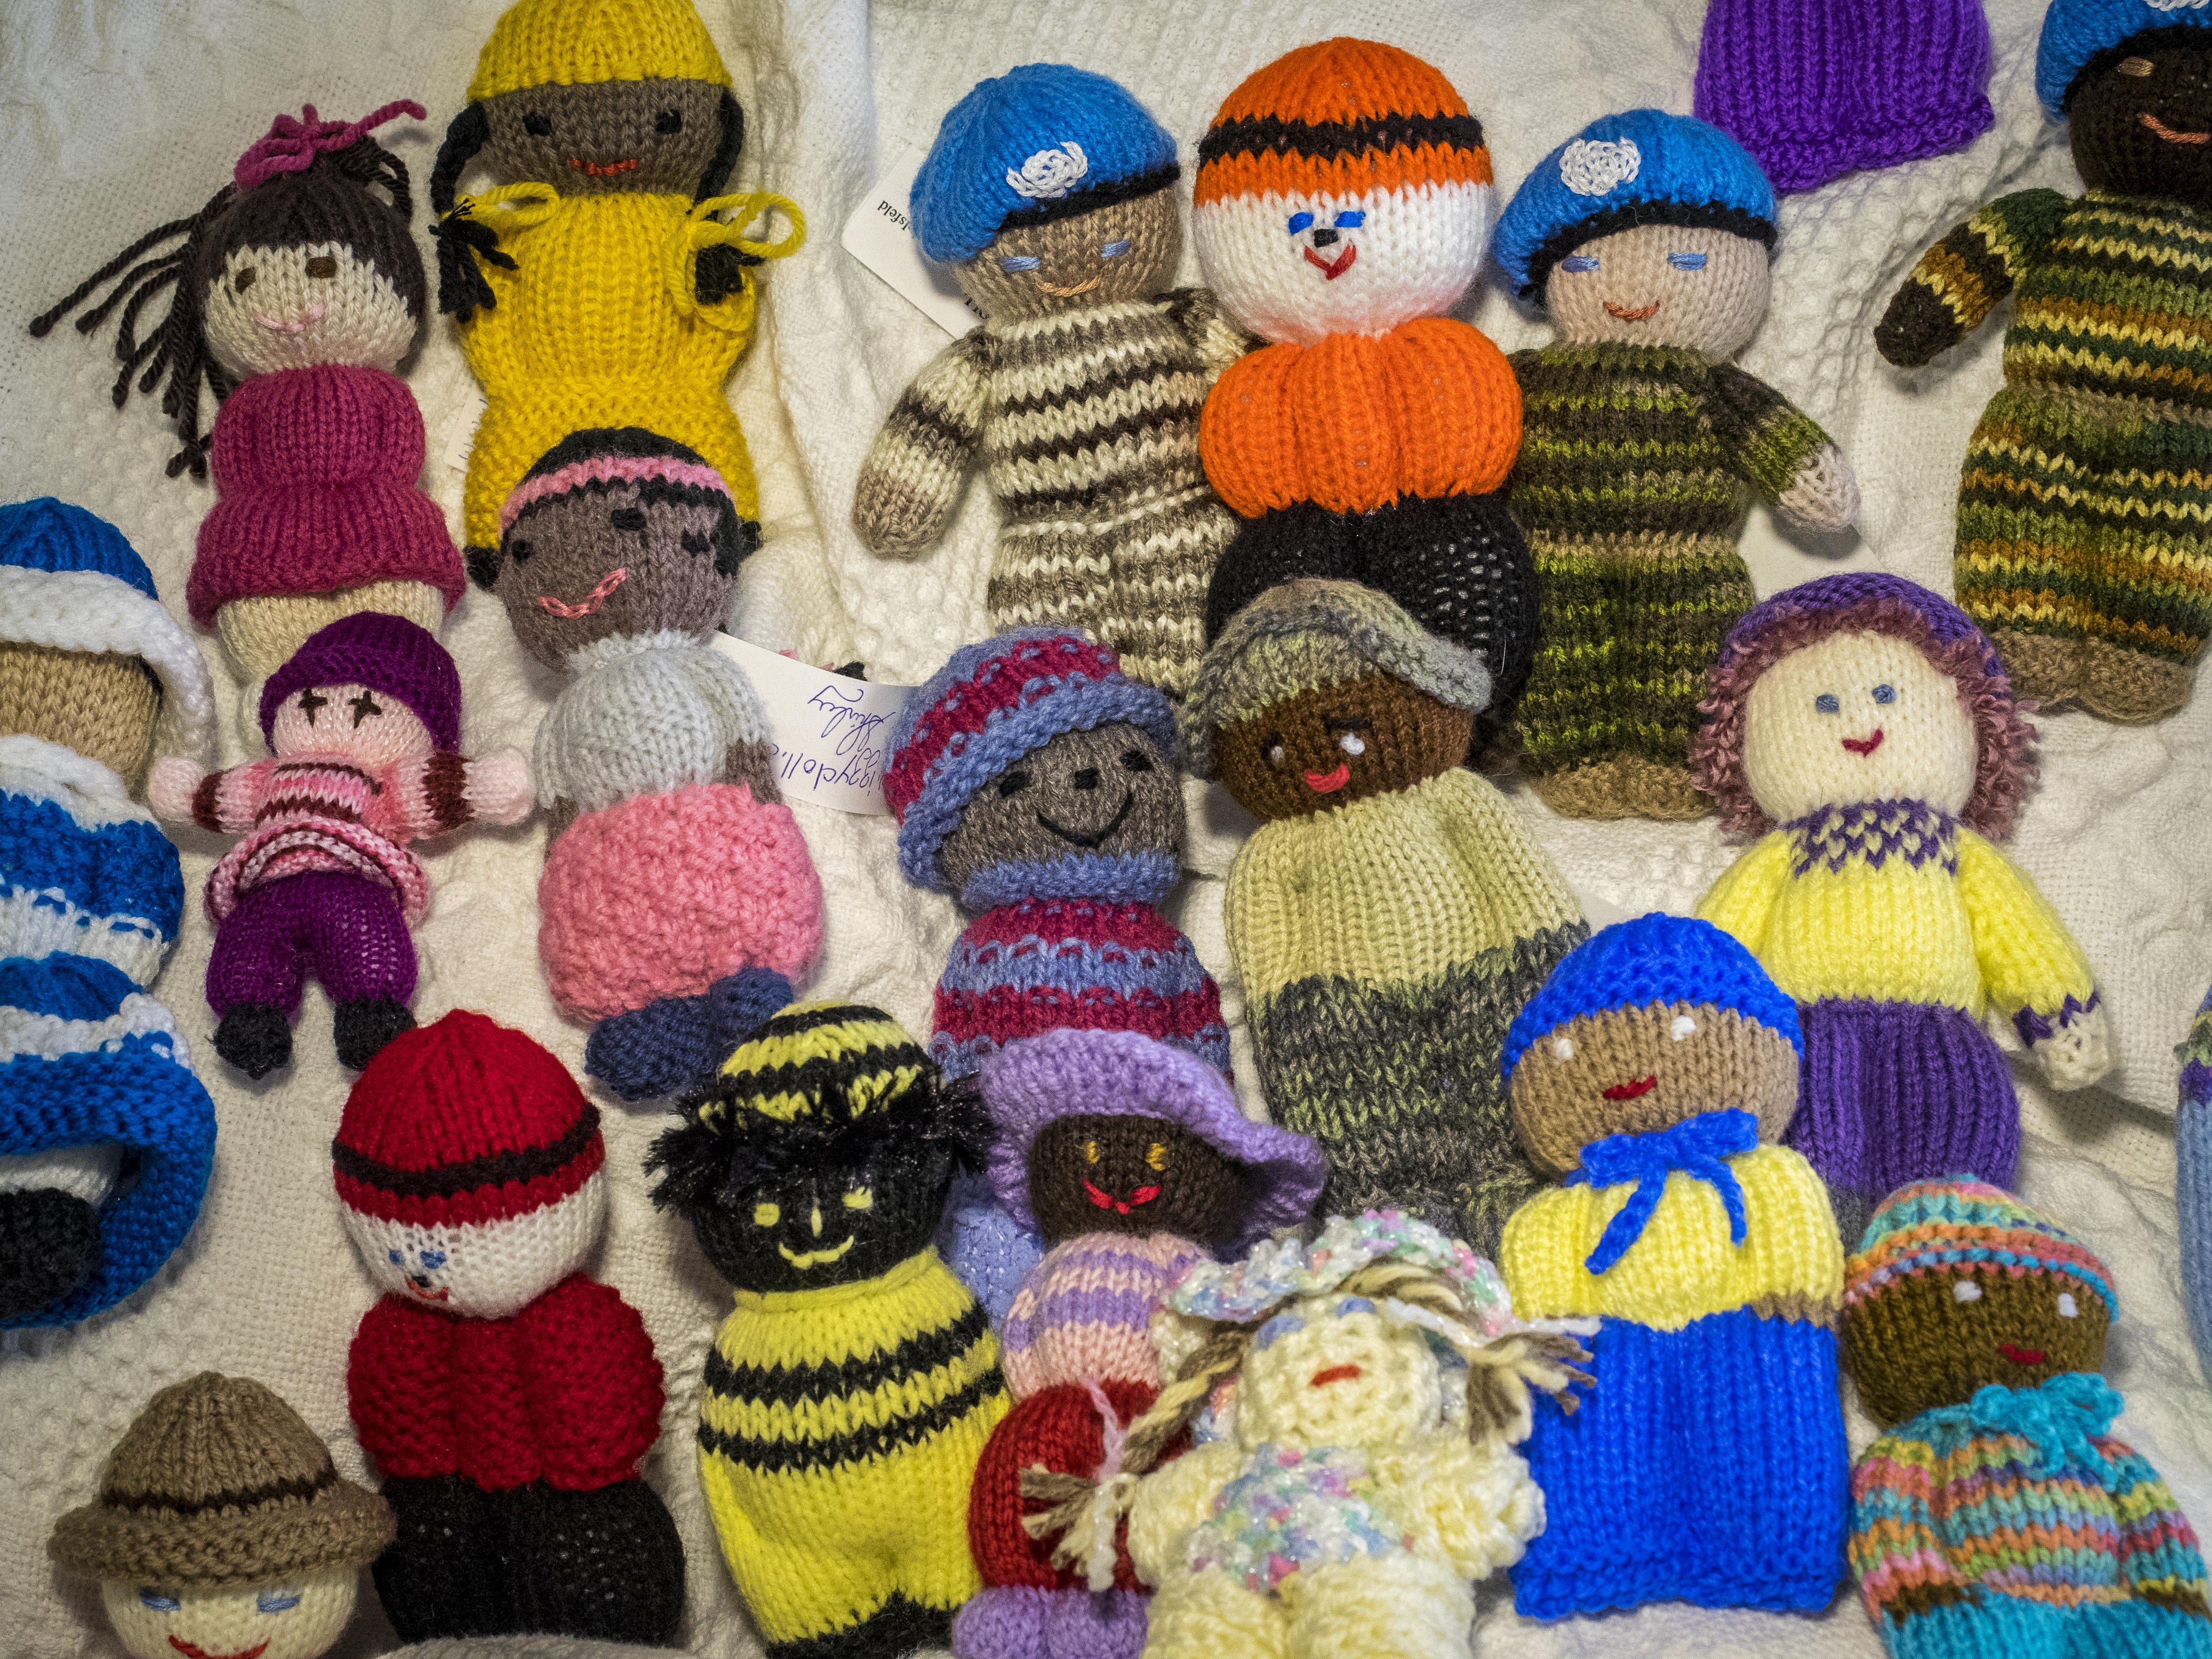 Free Knitting Doll Patterns Knit An Izzy Doll For Charity To Spread A Message Of Love And Peace